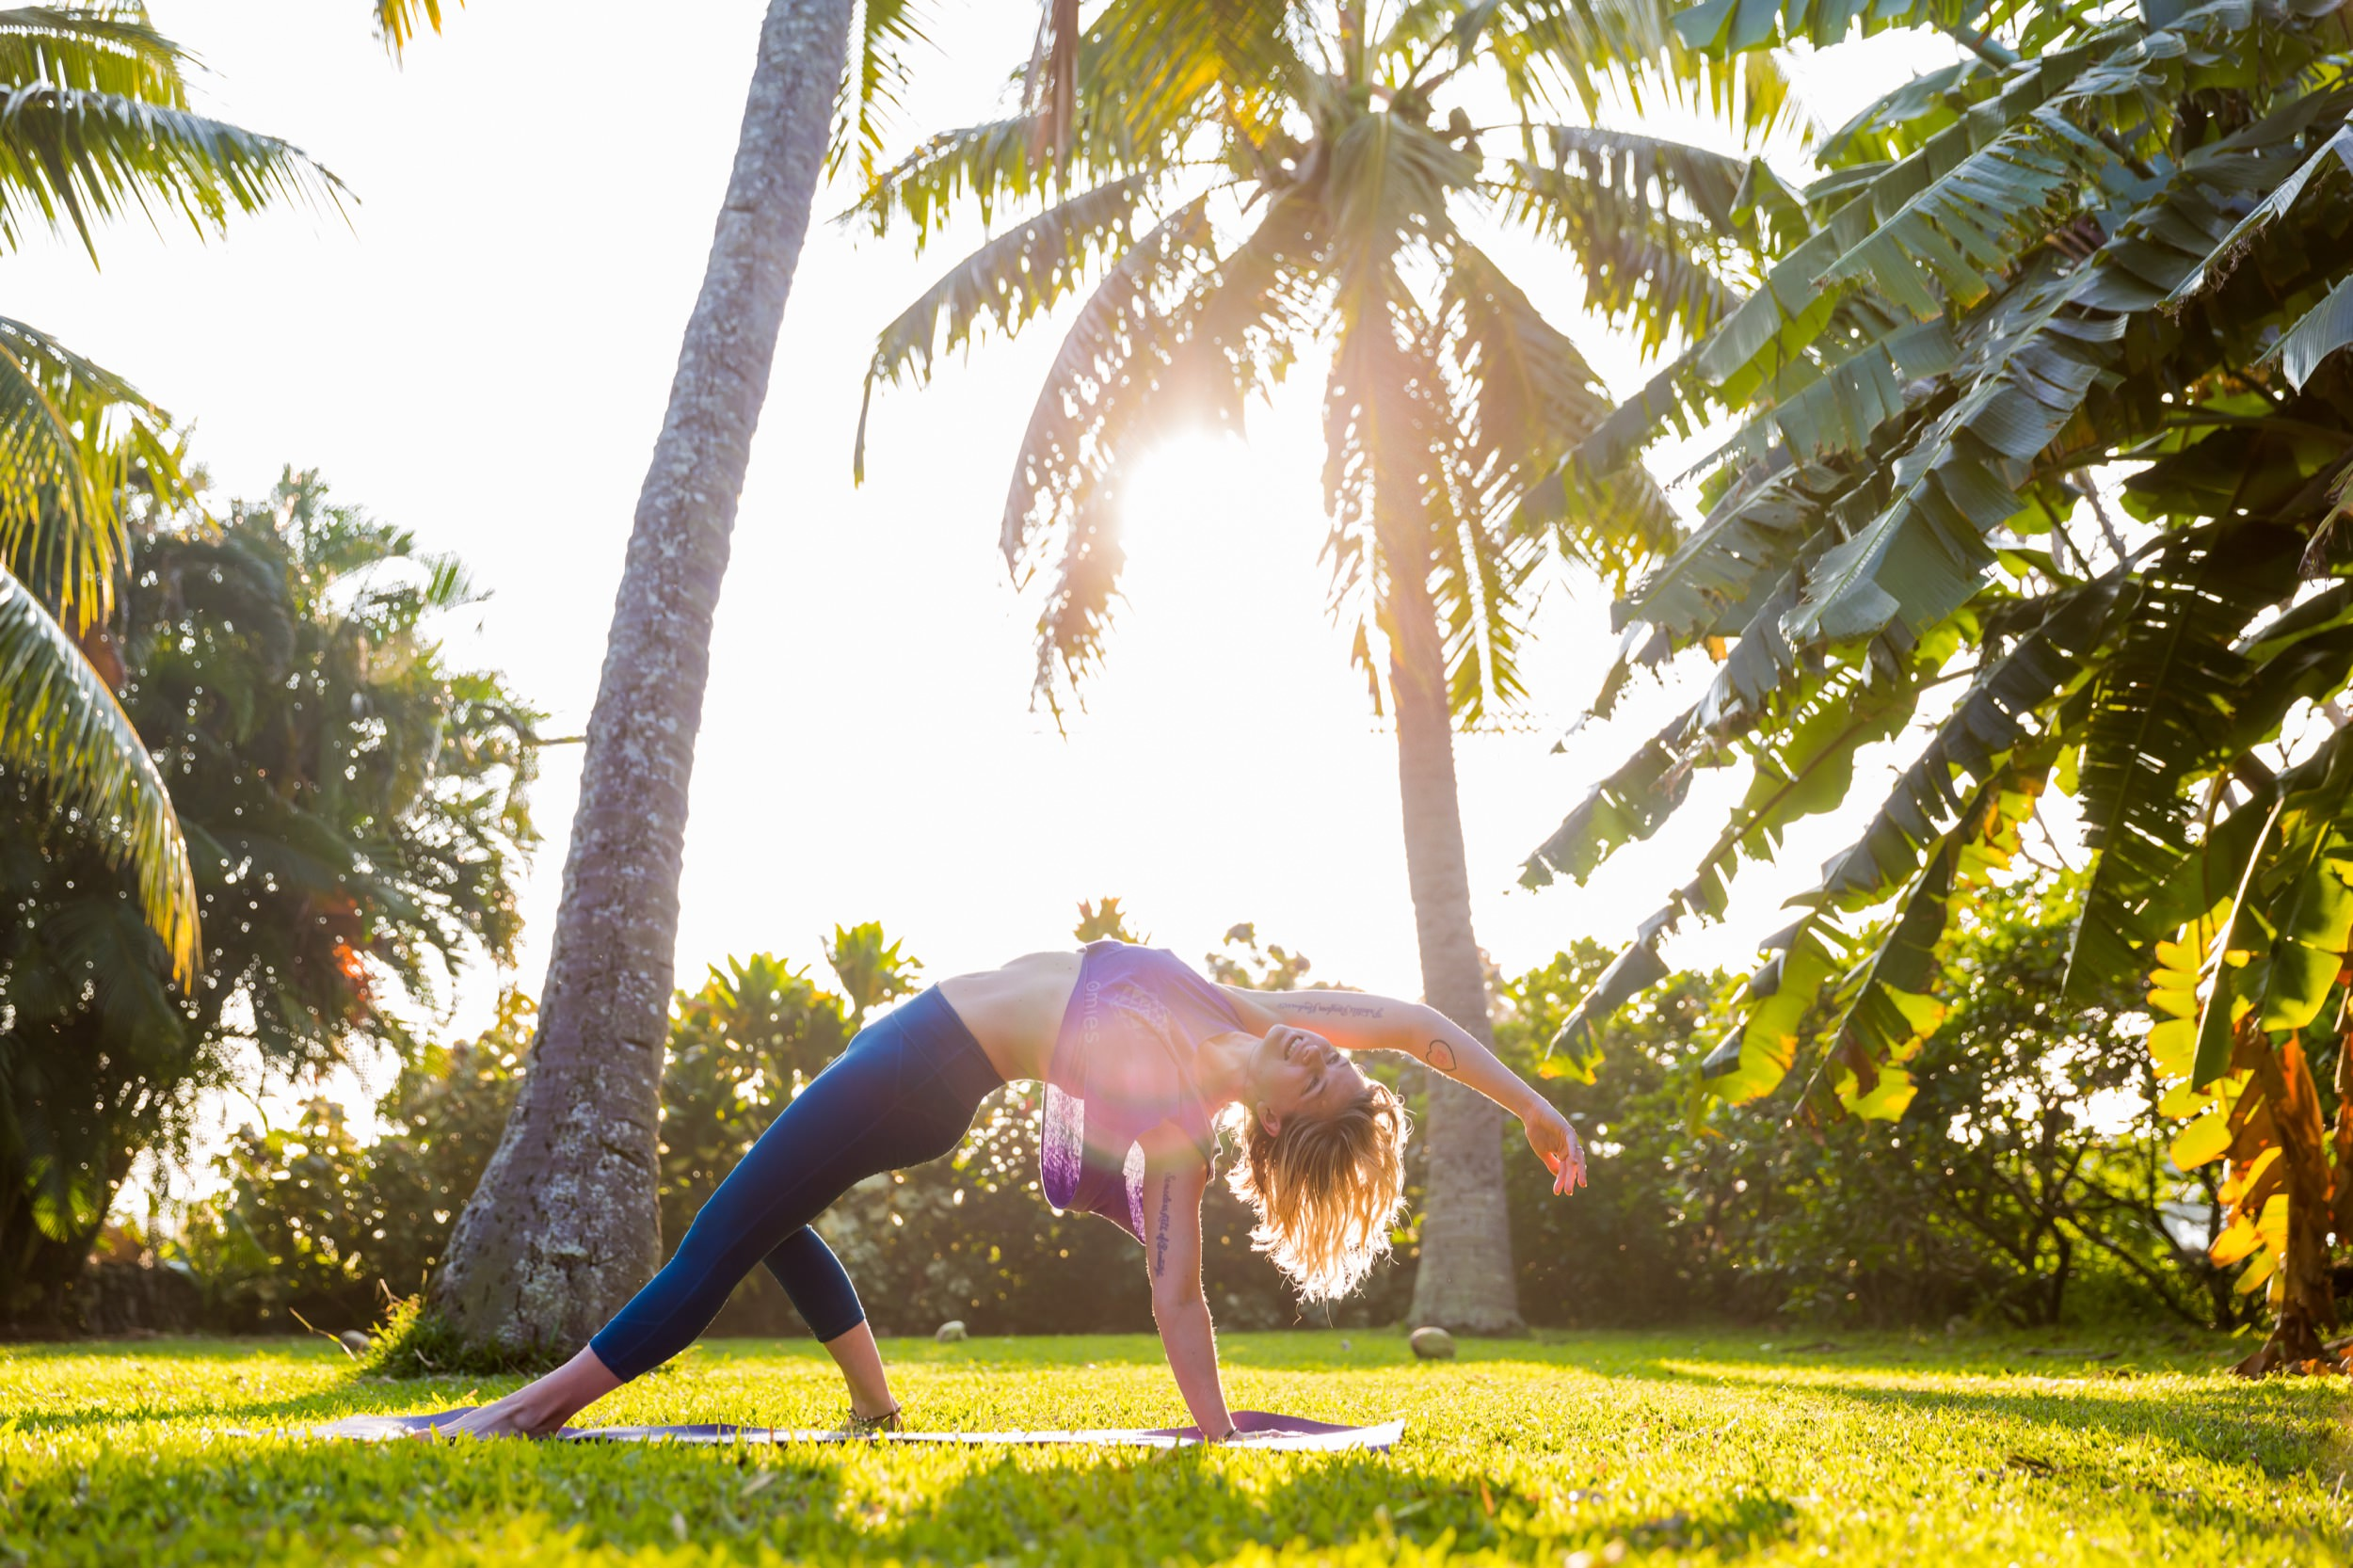 014_070_011015_Hana-Maui-Yoga-Retreat_Nicole-Goddard-Photography_NMG_7667